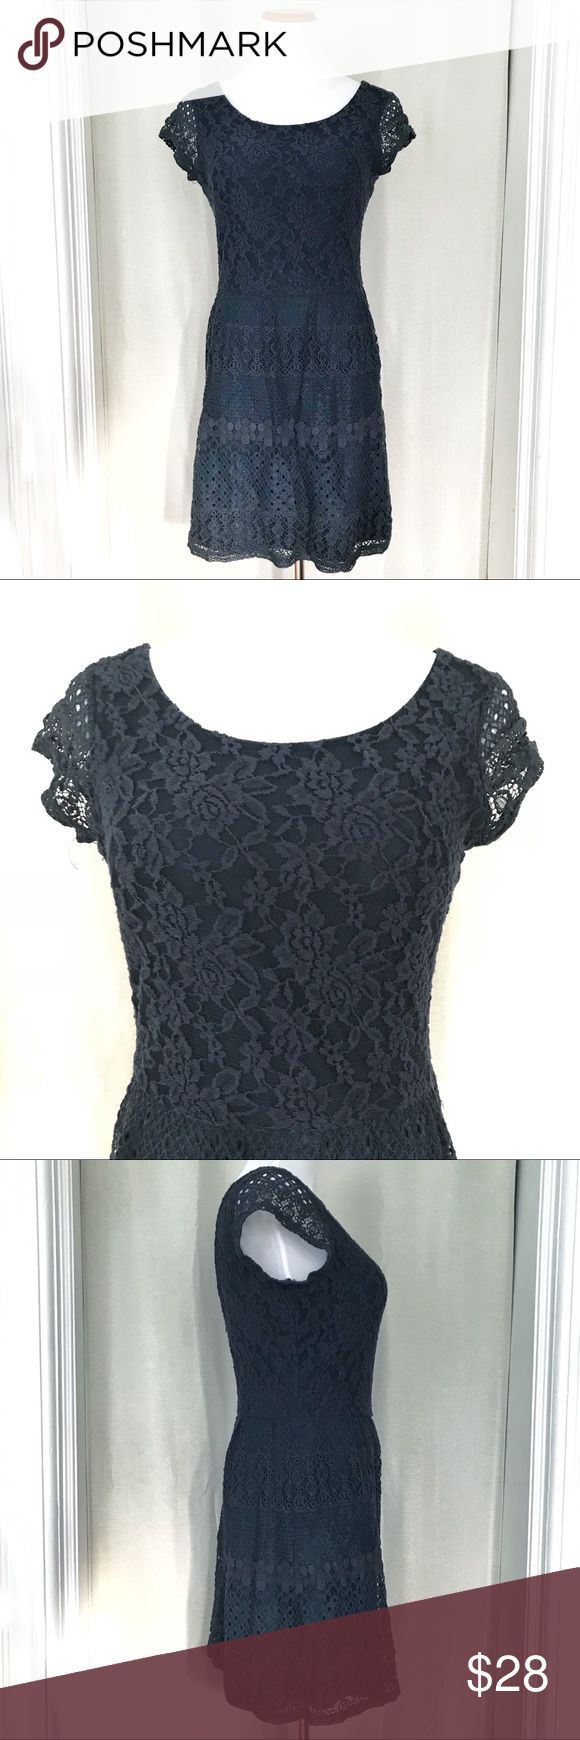 Cute Navy Lace Dress Cute Navy Lace Dress gently worn in great condition. Scoop neckline with cute cap sleeve details. Back zip closure with V shaped back. Hemline ends just above knee. Bought in Japan will fit a slim 6 and a regular size 4. Beautiful floral lace design makes this a cute everyday dress. Dresses Mini